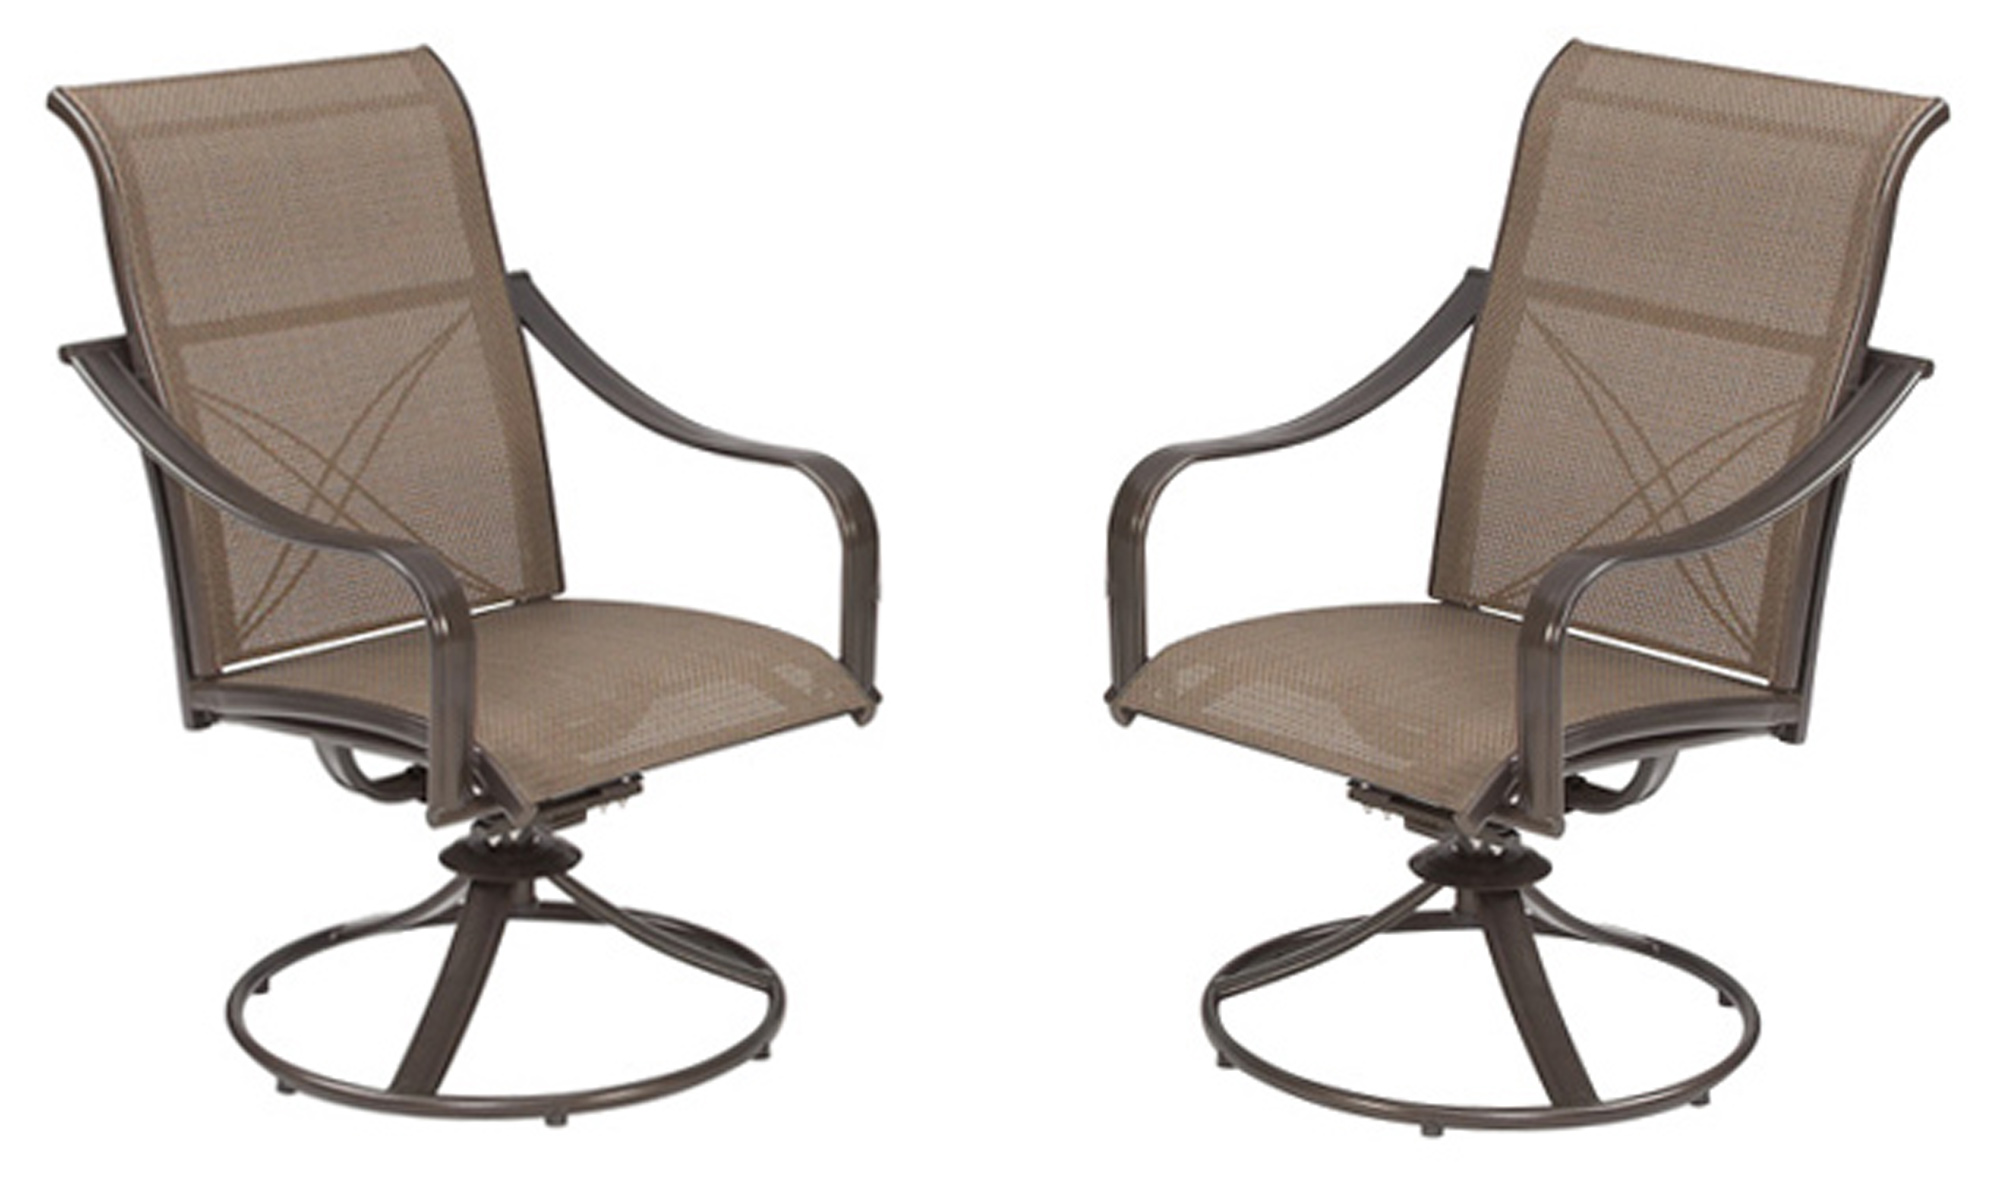 Casual Living Worldwide Recalls Swivel Patio Chairs Due to ... on Casual Living Patio id=24539